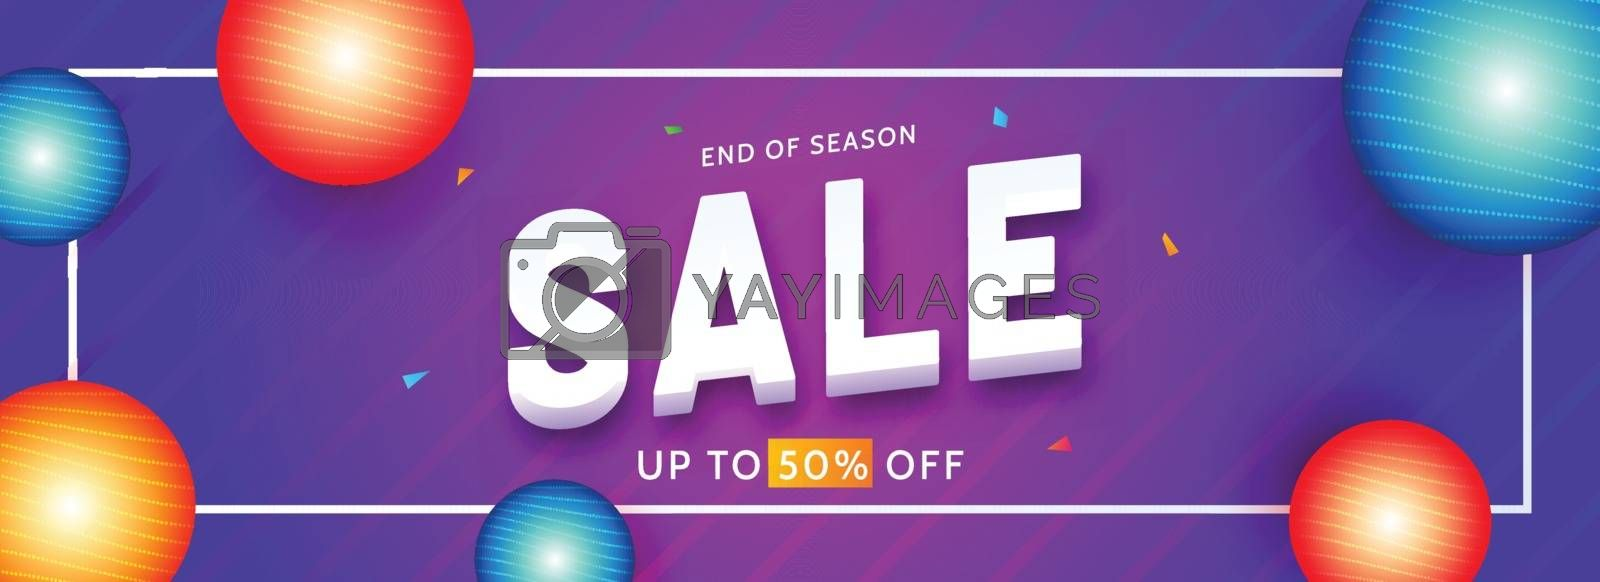 Royalty free image of Advertising sale banner or header design with 50% discount offer by aispl